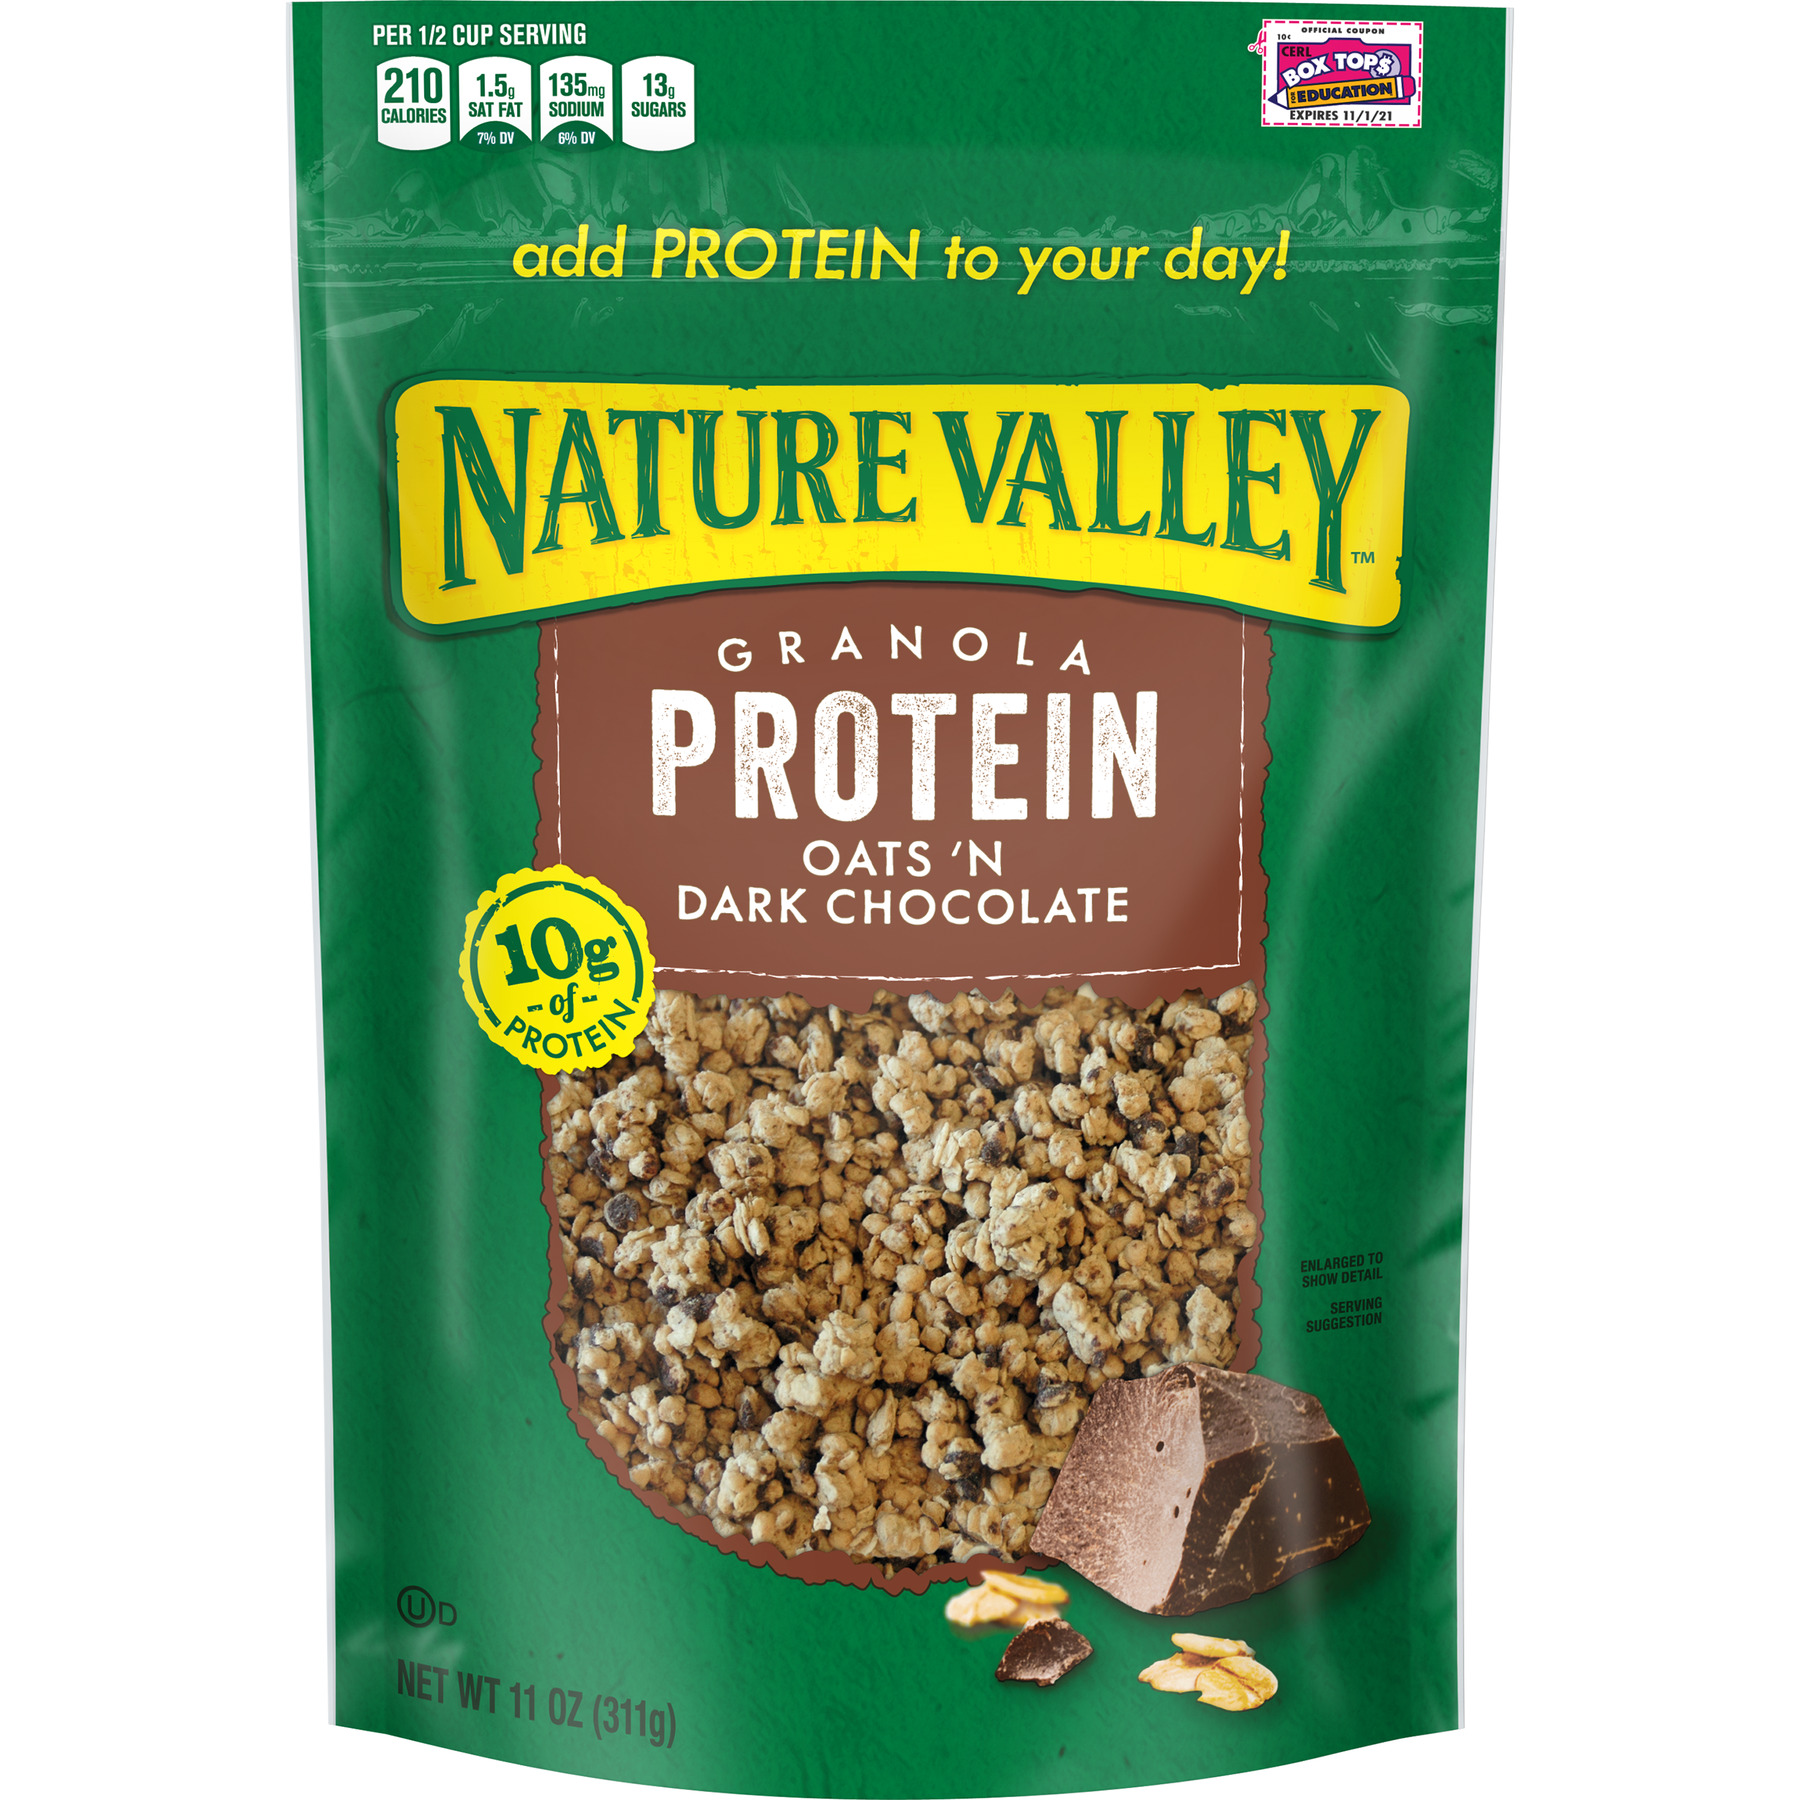 (2 Pack) Nature Valley Granola, Protein, Oats N' Dark Chocolate, Crunchy Granola Bag, 11 oz